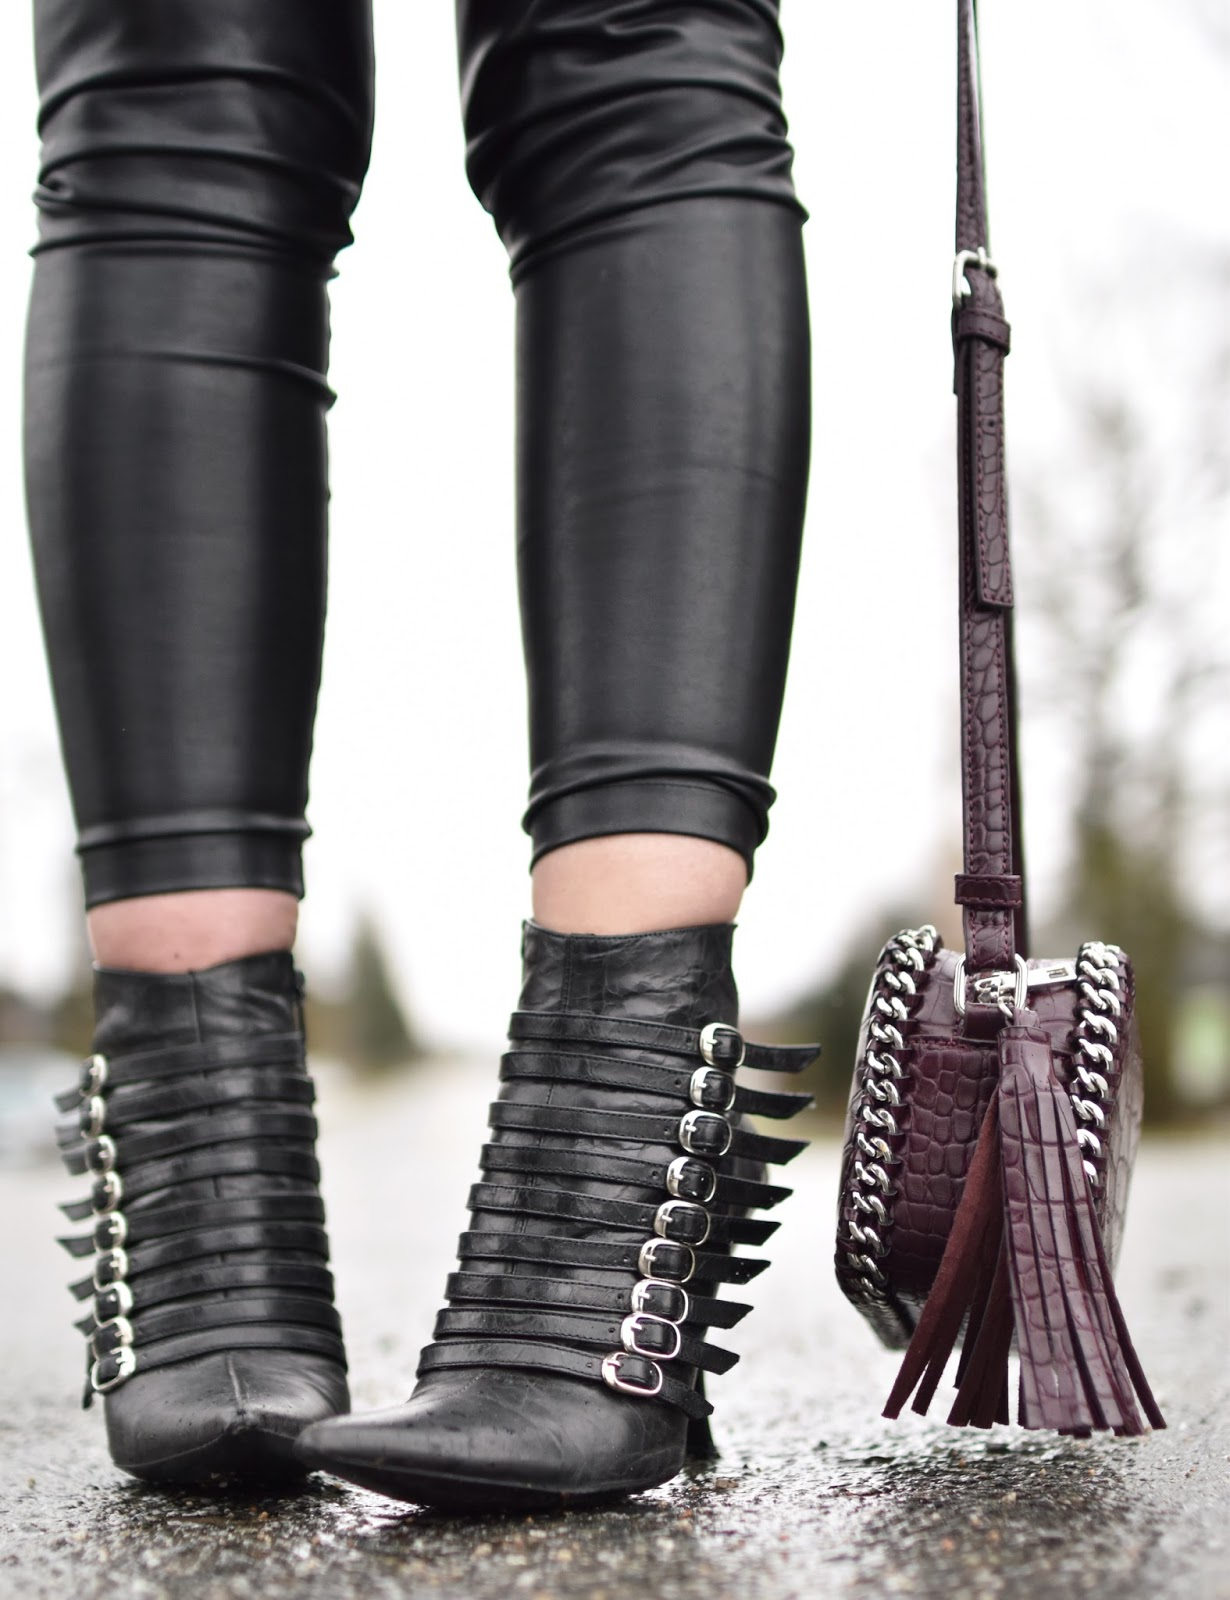 Monika Faulkner outfit inspiration - vegan leather leggings, buckle-embellished stiletto booties, maroon cross-body bag